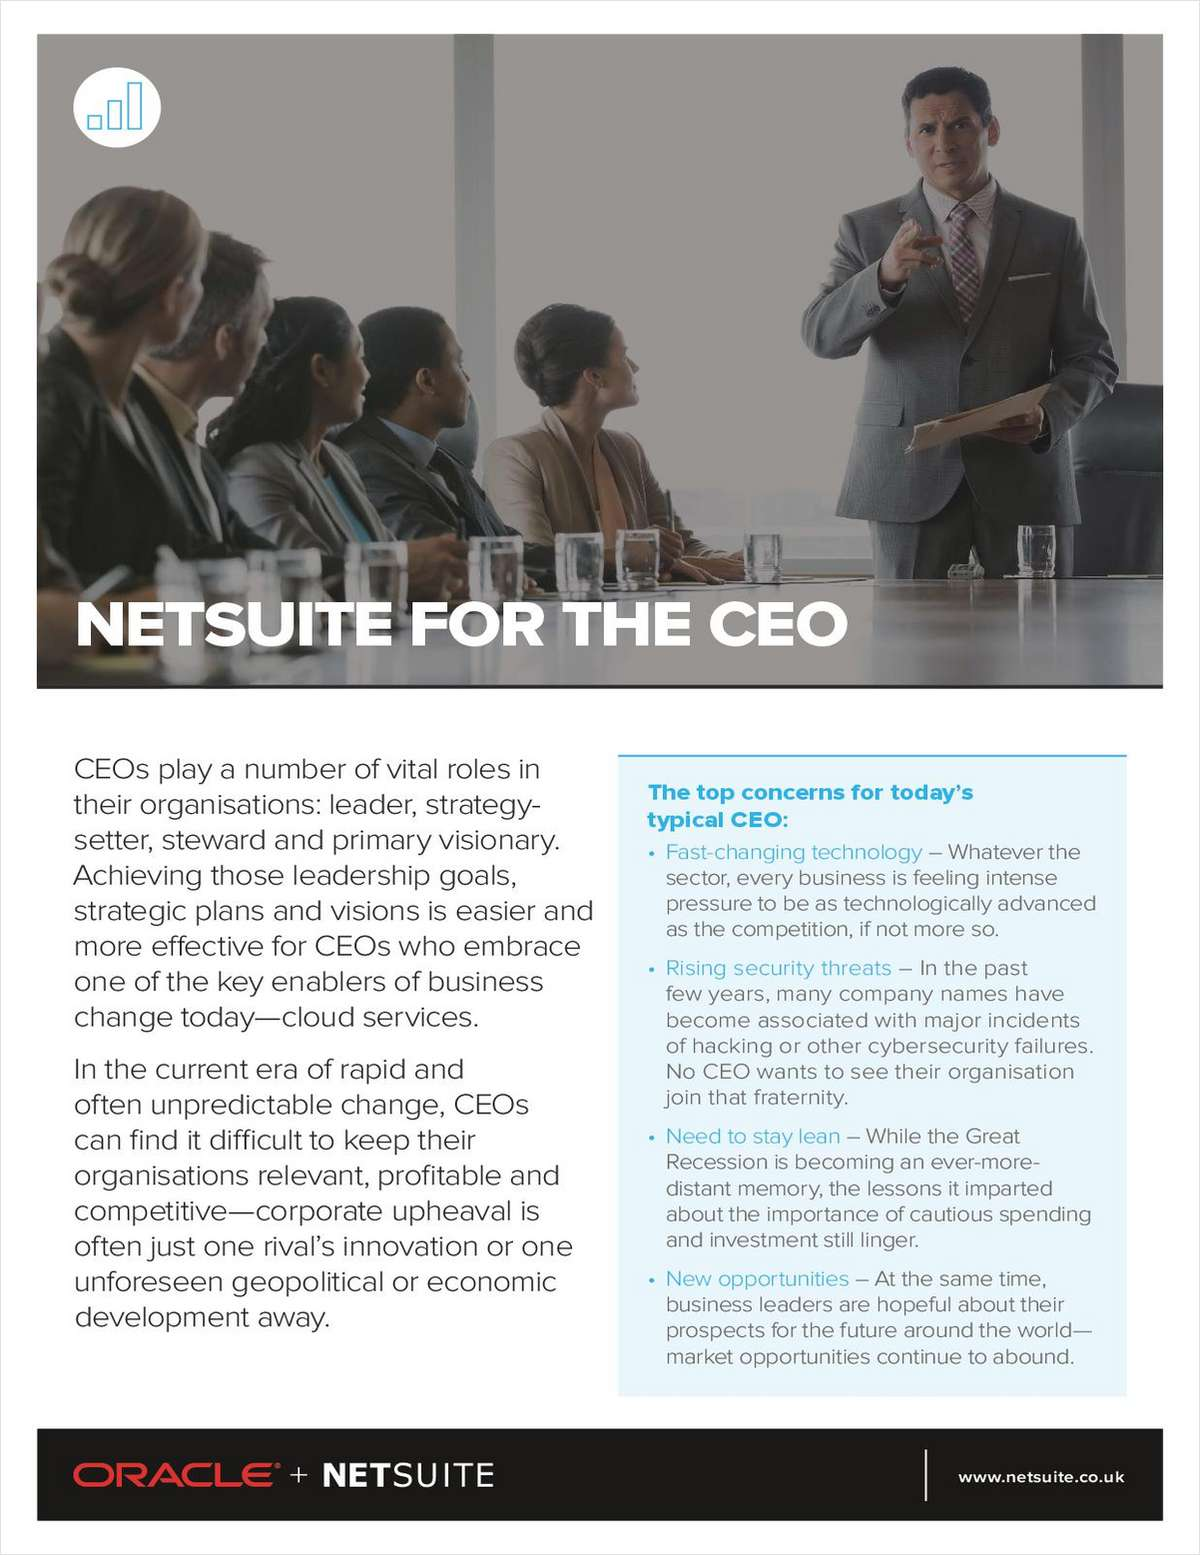 NetSuite for the CEO